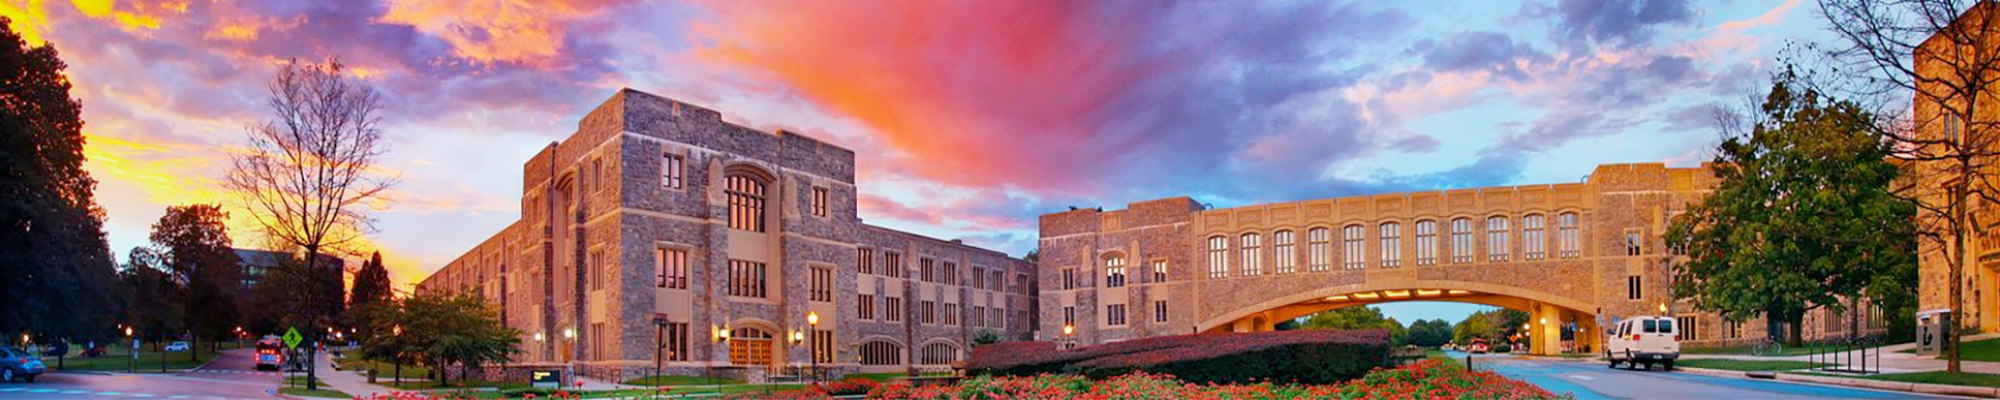 Virginia Tech arch at sunset